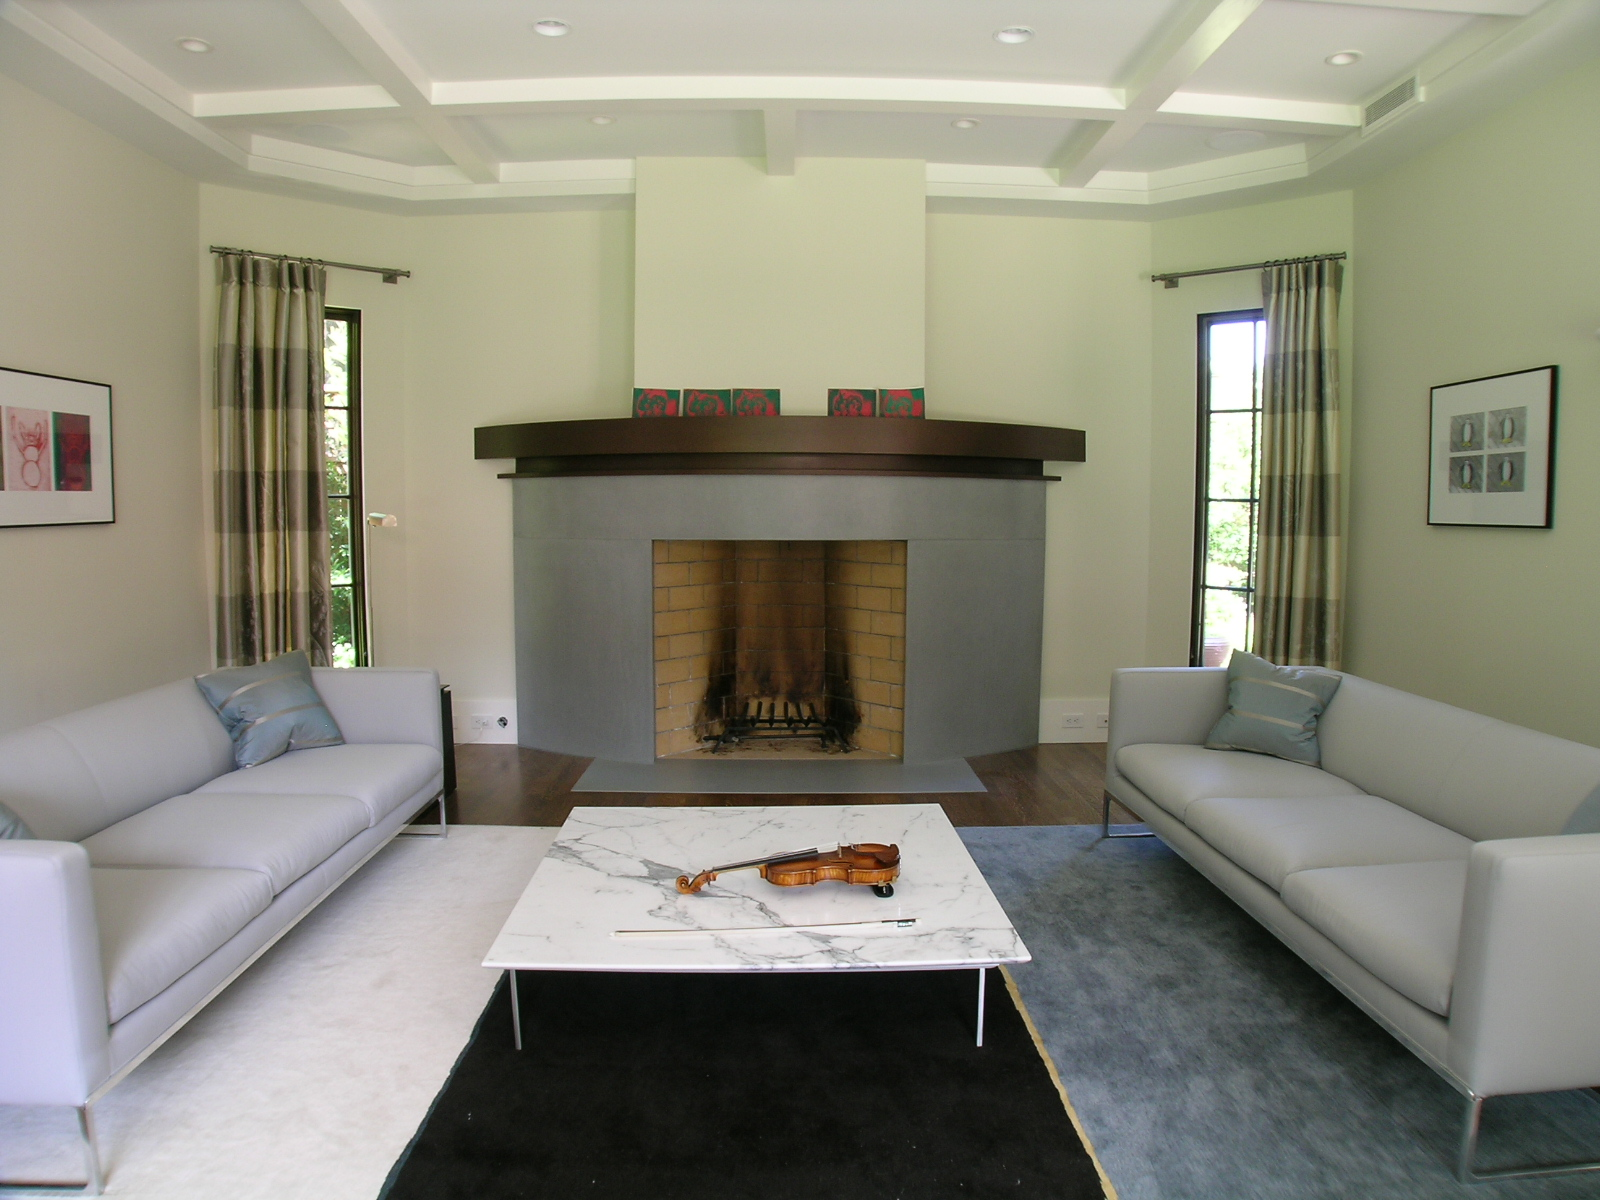 Posts about fireplace materials written by Carolyn Van Lang